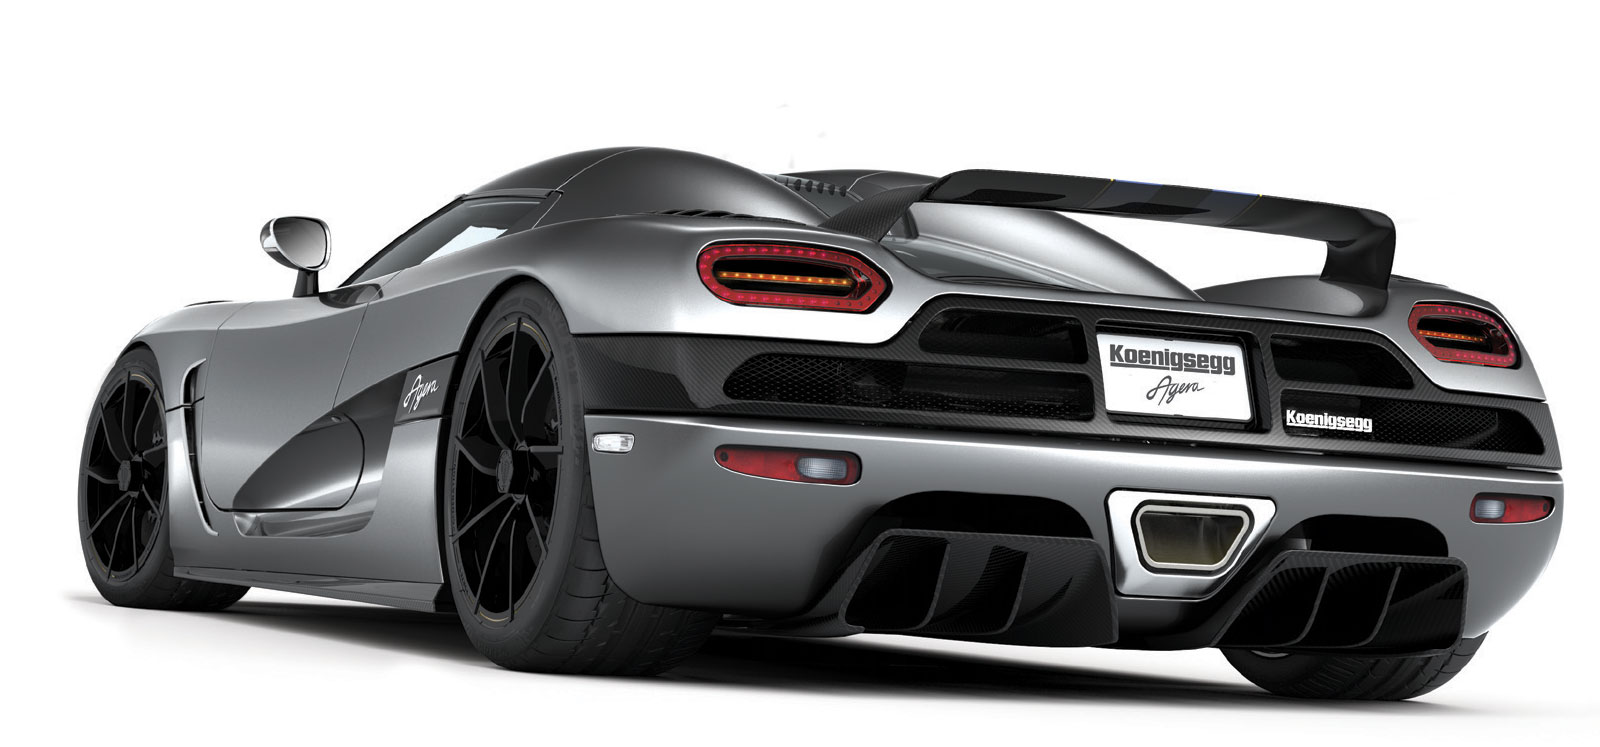 koenigsegg voitures de sport la su doise. Black Bedroom Furniture Sets. Home Design Ideas